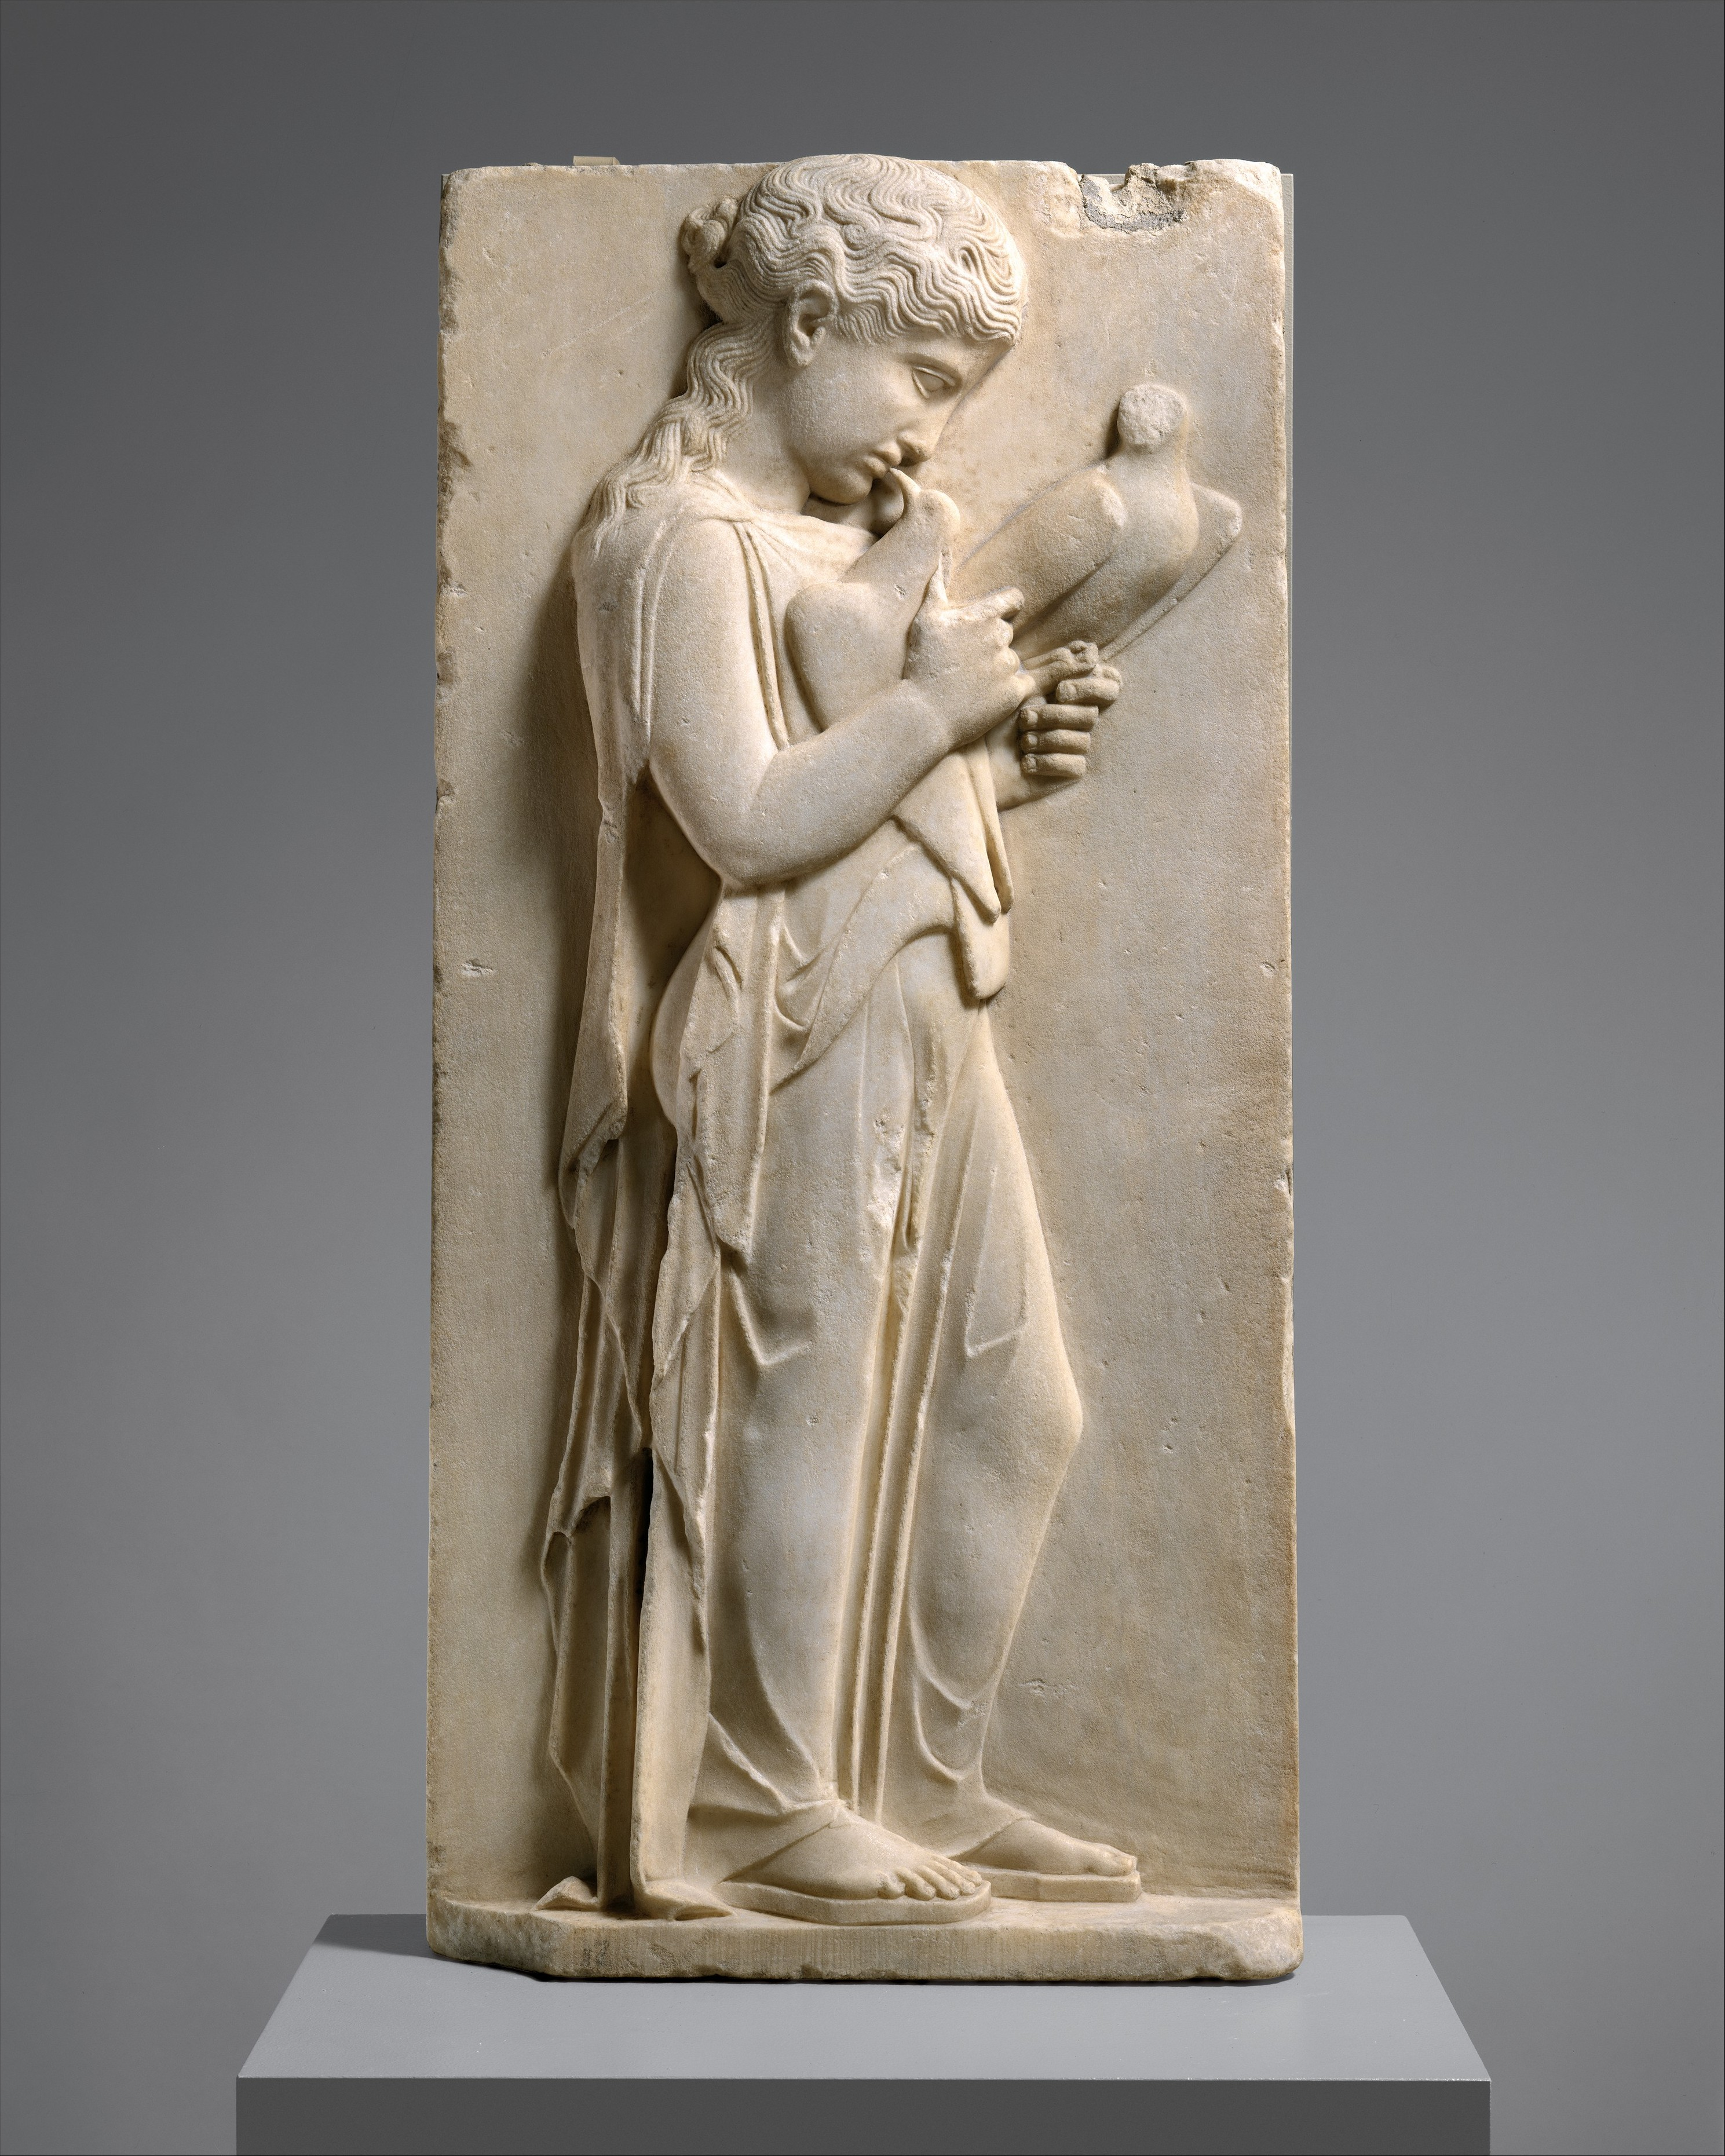 marble stele grave marker of a youth and a little girl Marble stele grave marker of a youth and a little girl greek attic 530 bce athens see more by mharrsch middle east culture achaemenid antiquities archaeology lion.